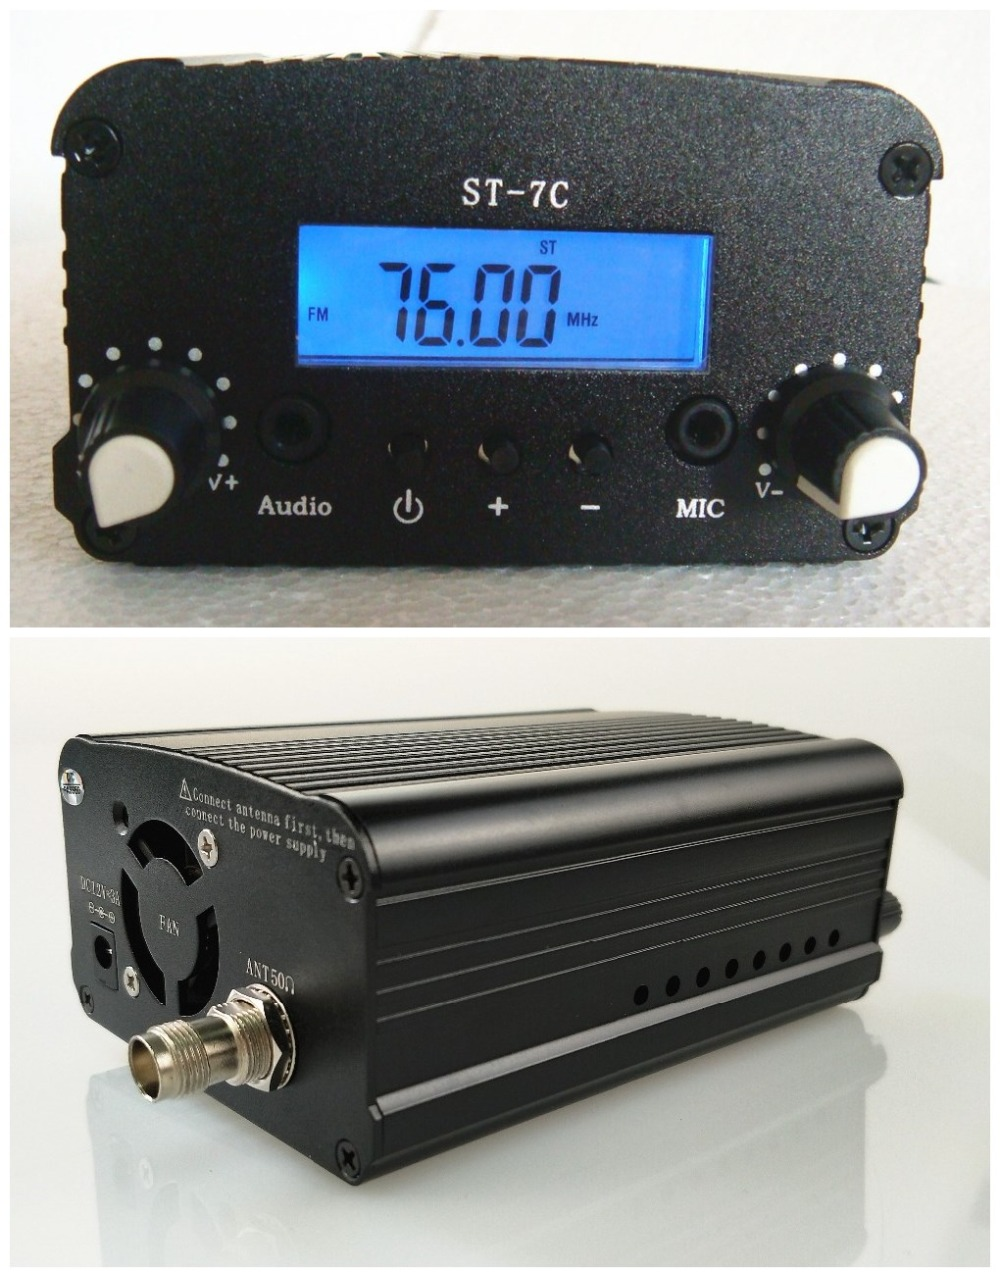 1W/7W 12V 3A ST-7C 76-108MHZ stereo PLL FM transmitter broadcast radio station niorfnio 1w 6w pll fm transmitter mini radio stereo station broadcast with lcd display only host for radio y4339d